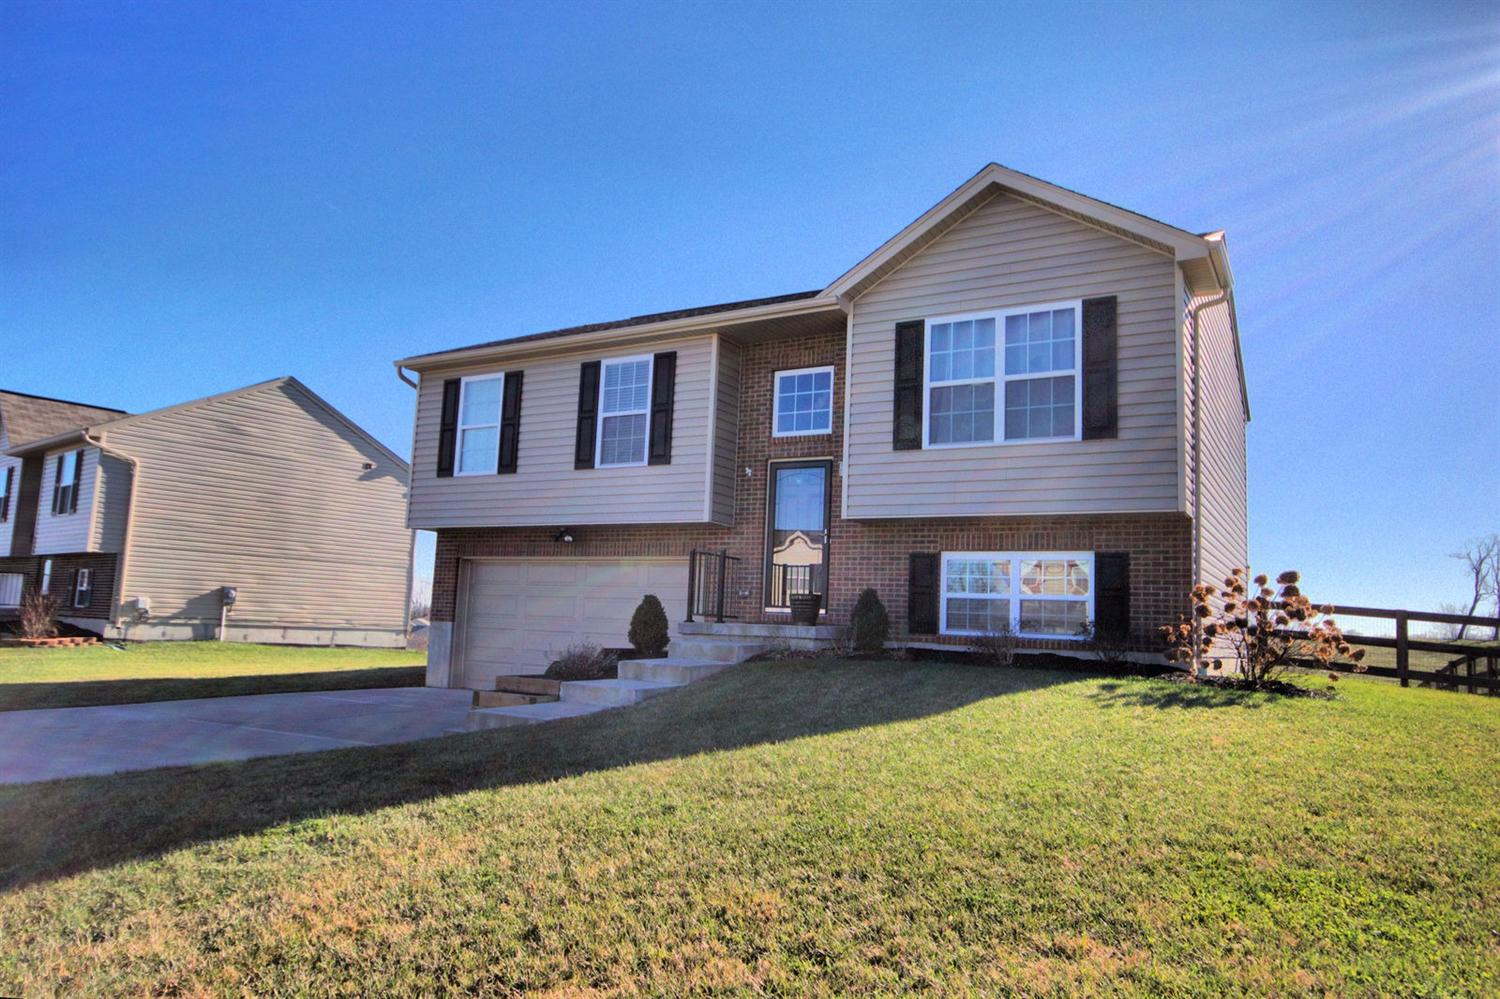 Photo 1 for 367 Rocky Pointe Ct Walton, KY 41094